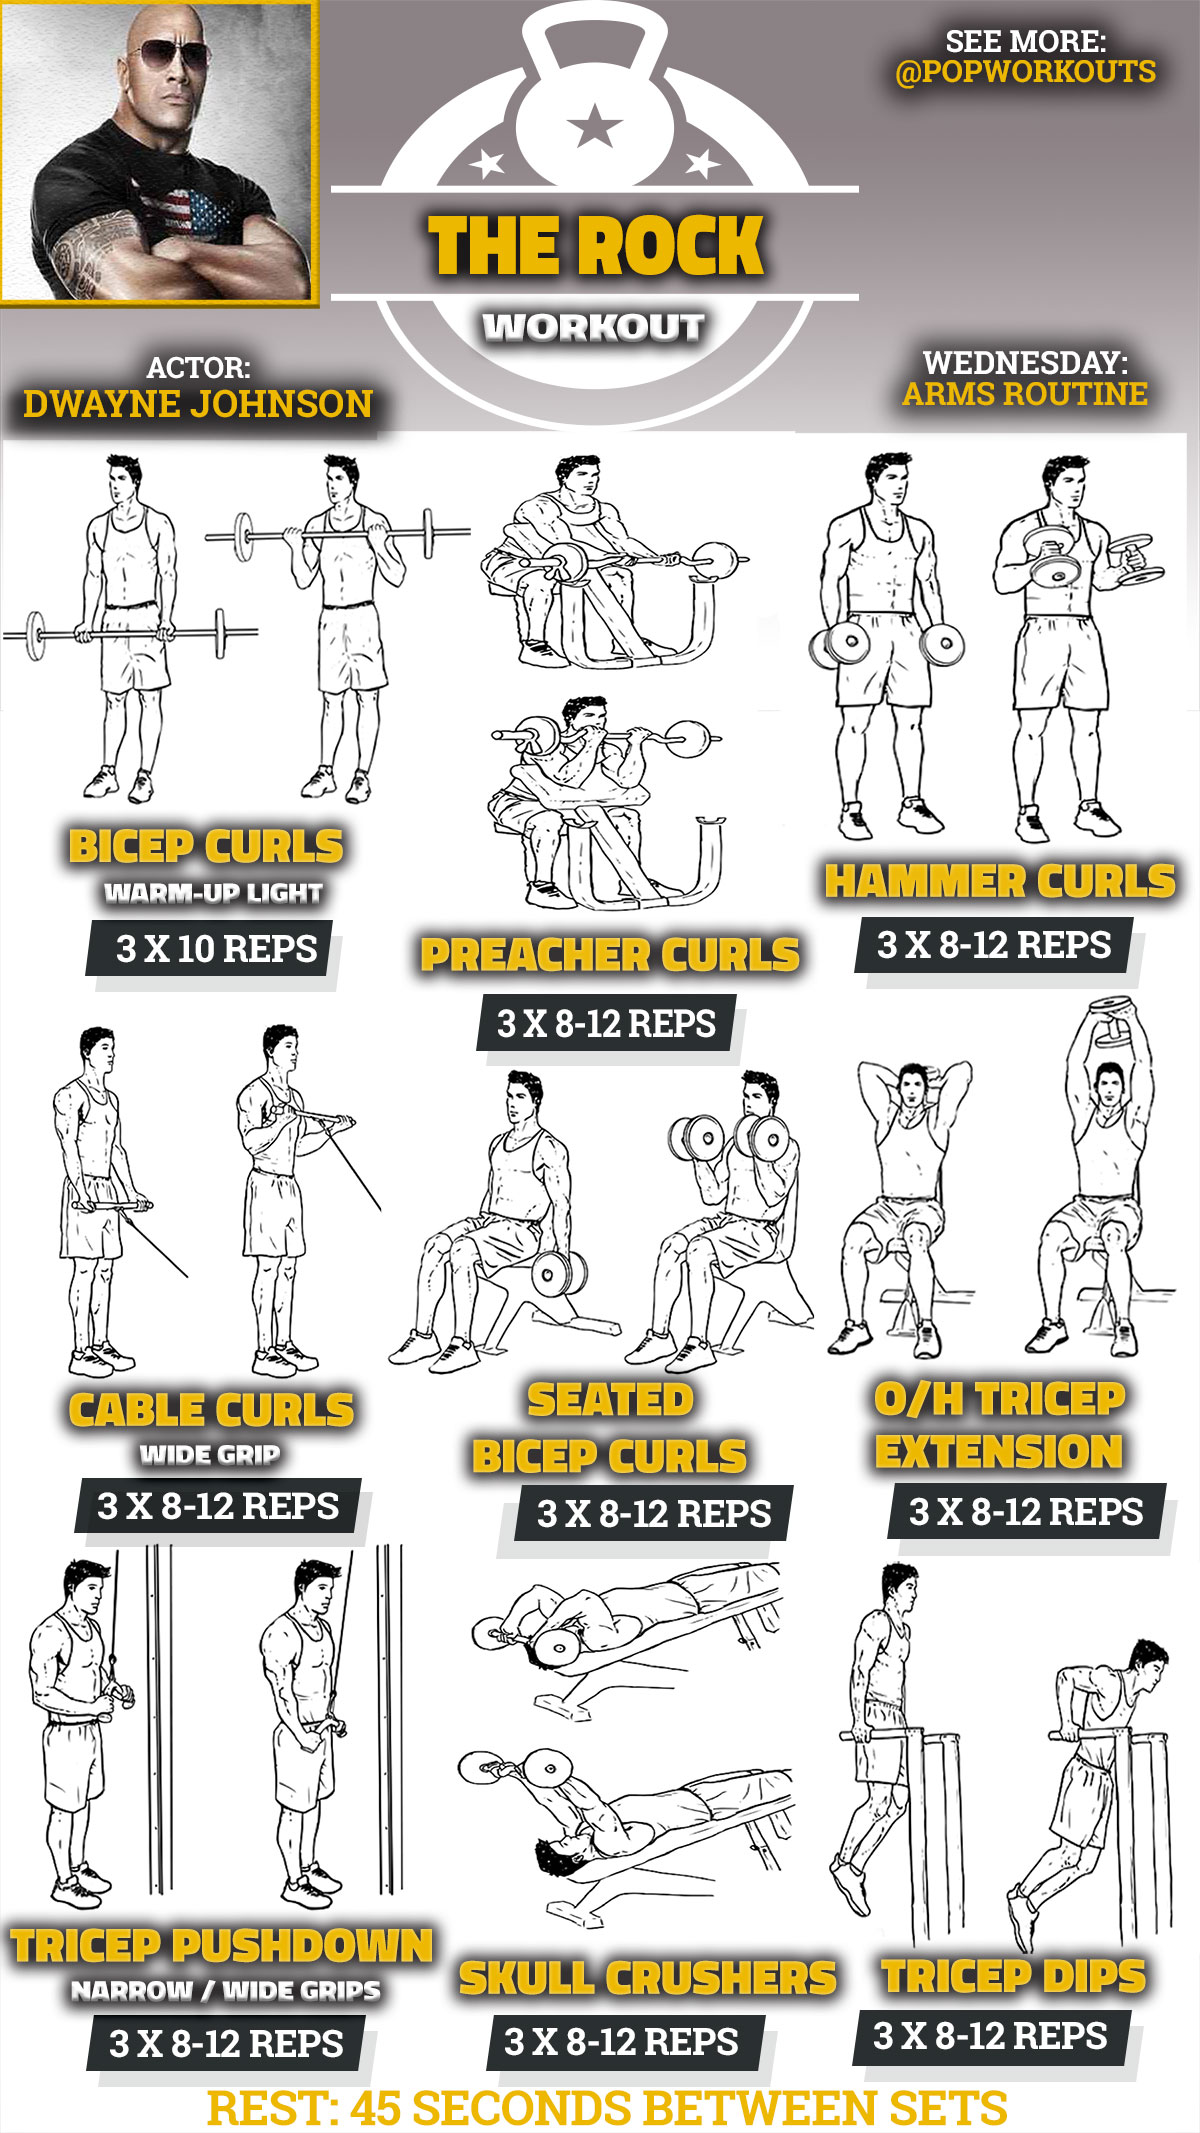 Gym Workout Chart For Chest For Men Get Massive Arms Rock 39s Bicep And Tricep Workout Pop Workouts